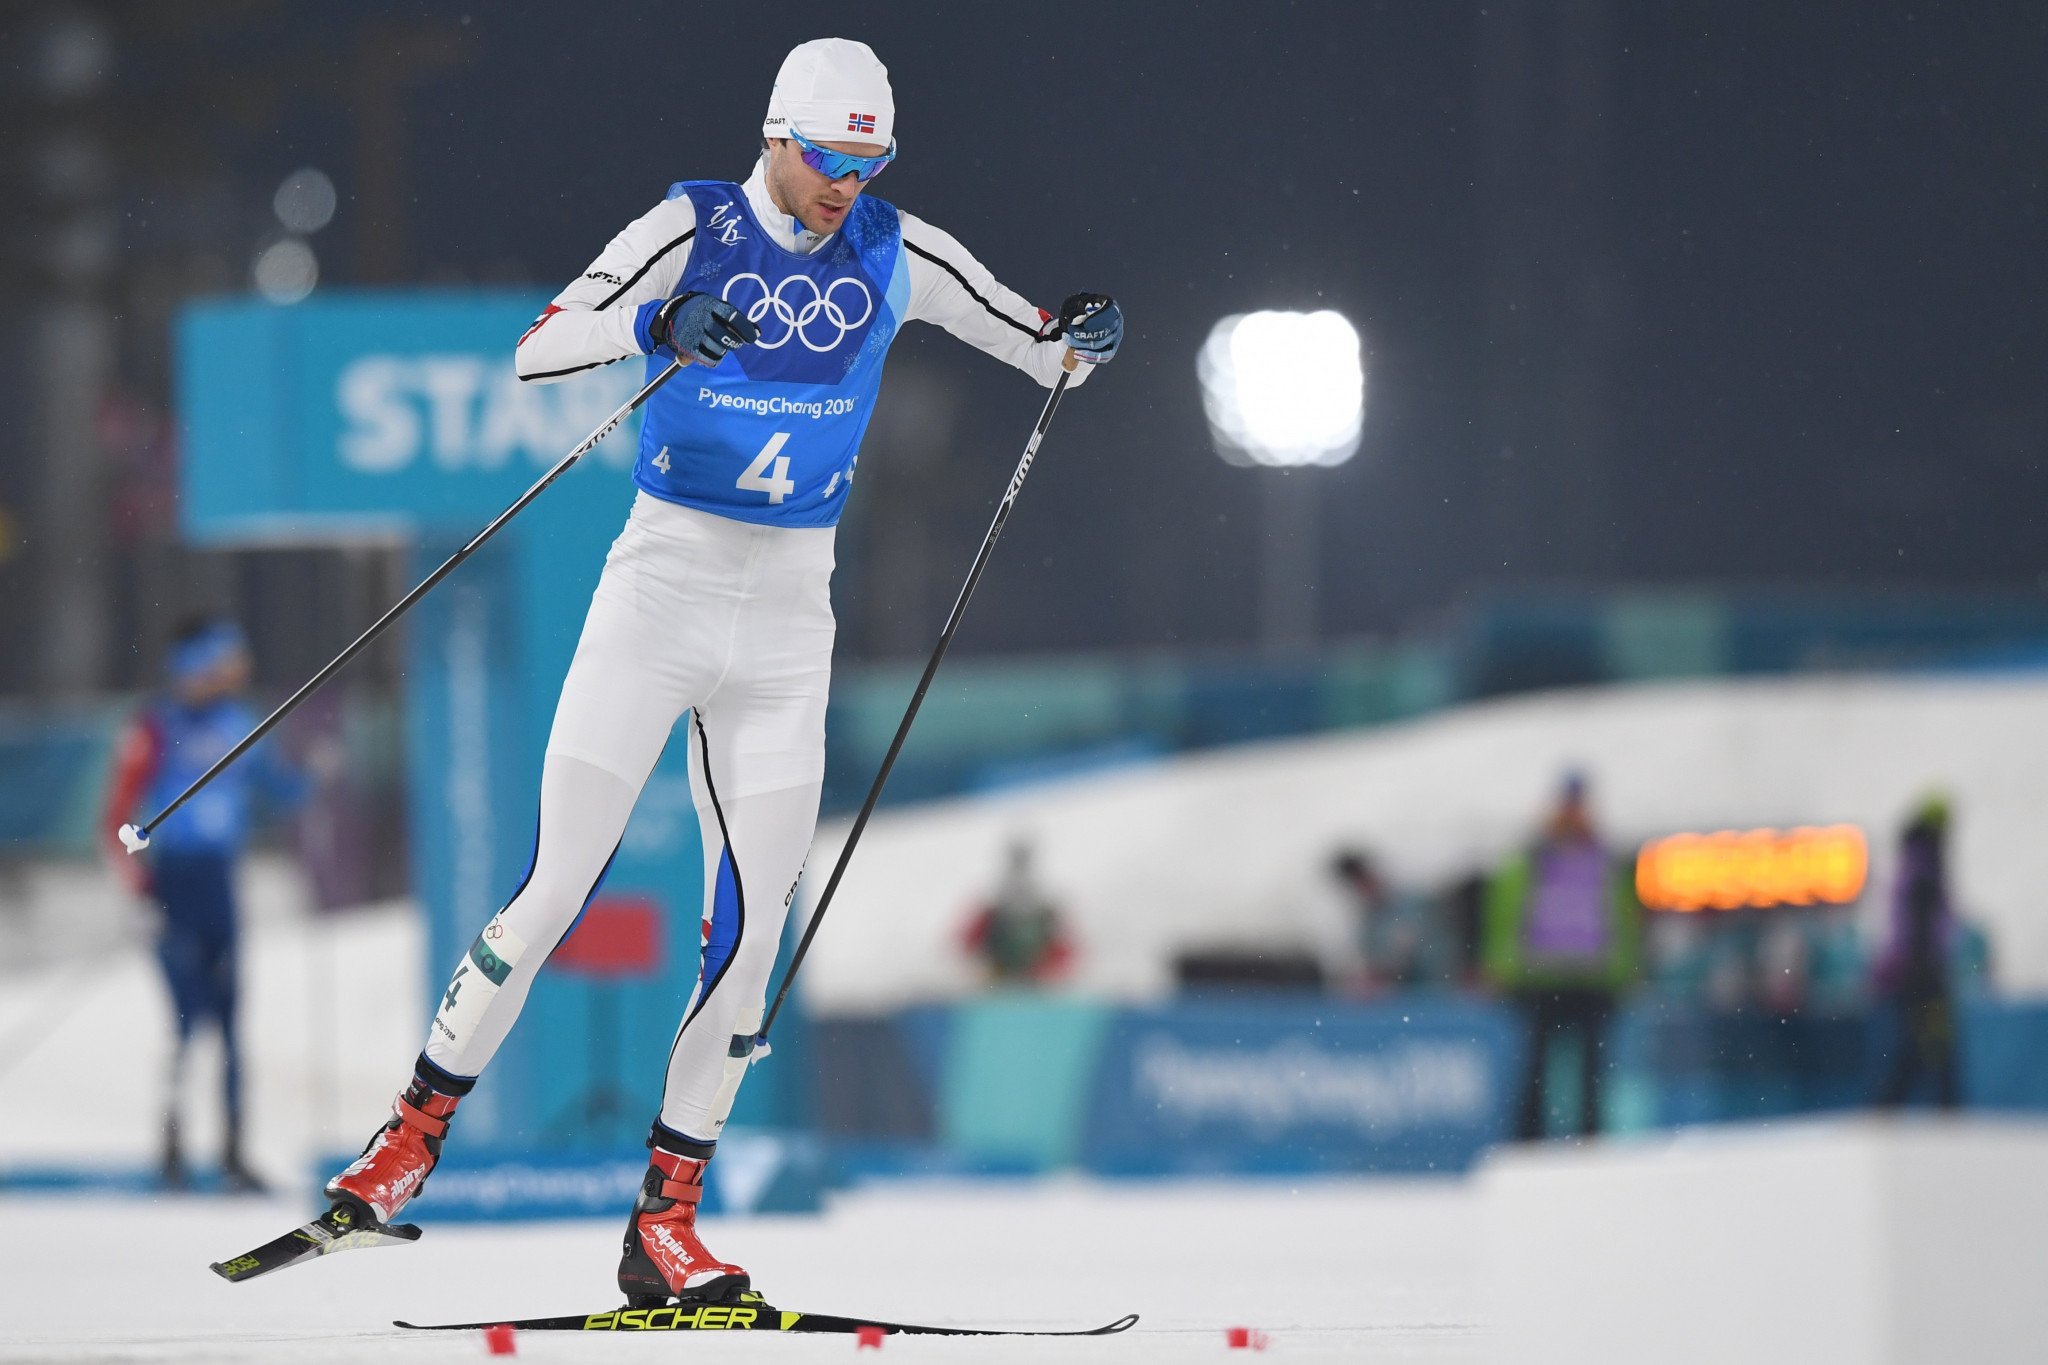 Joergen Graabak sealed a second-place finish for Norway ©Getty Images